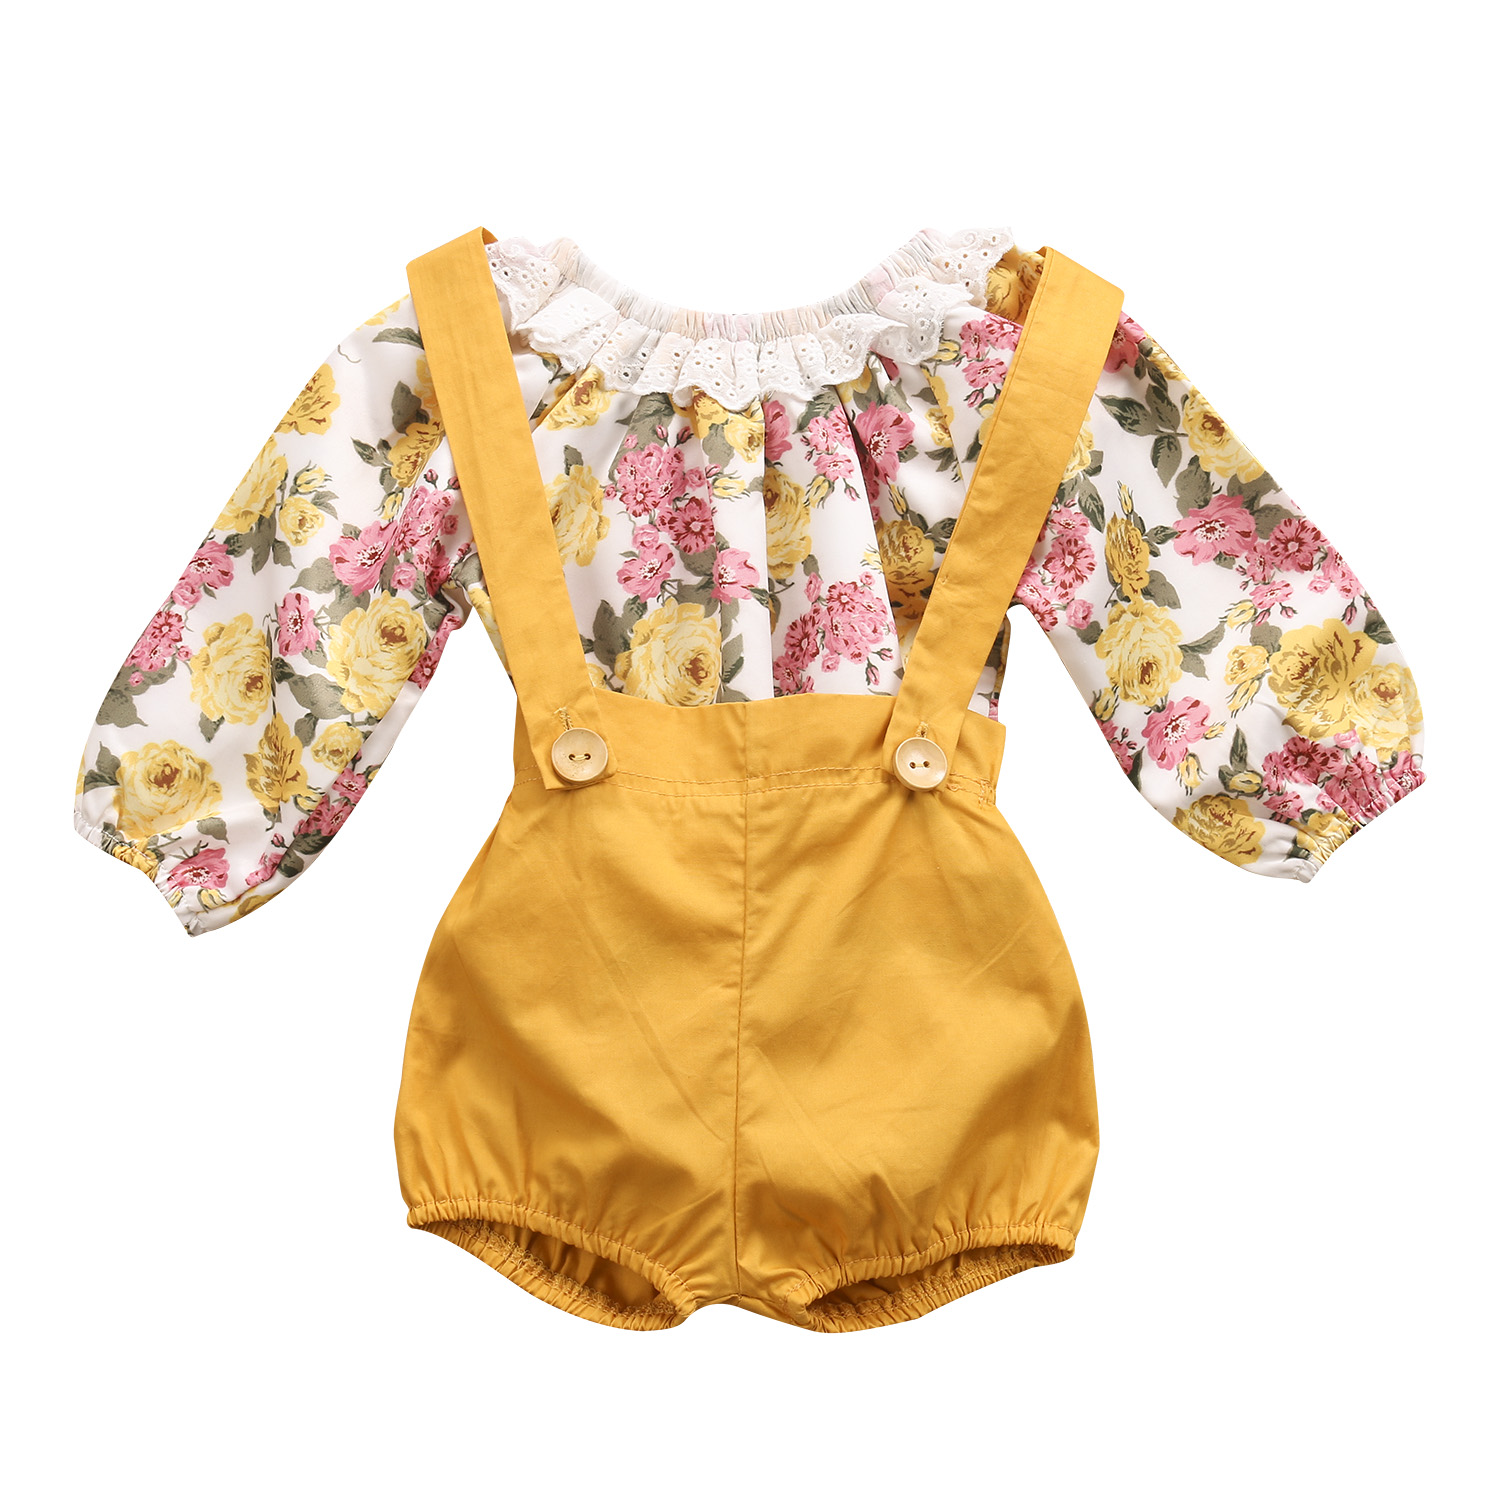 Summer Baby Girl Floral Outfits Clothes Newborn Kids Girls Princess Lace Rompers+Shorts Sunsuit Clothes Set Long Sleeve Clothing